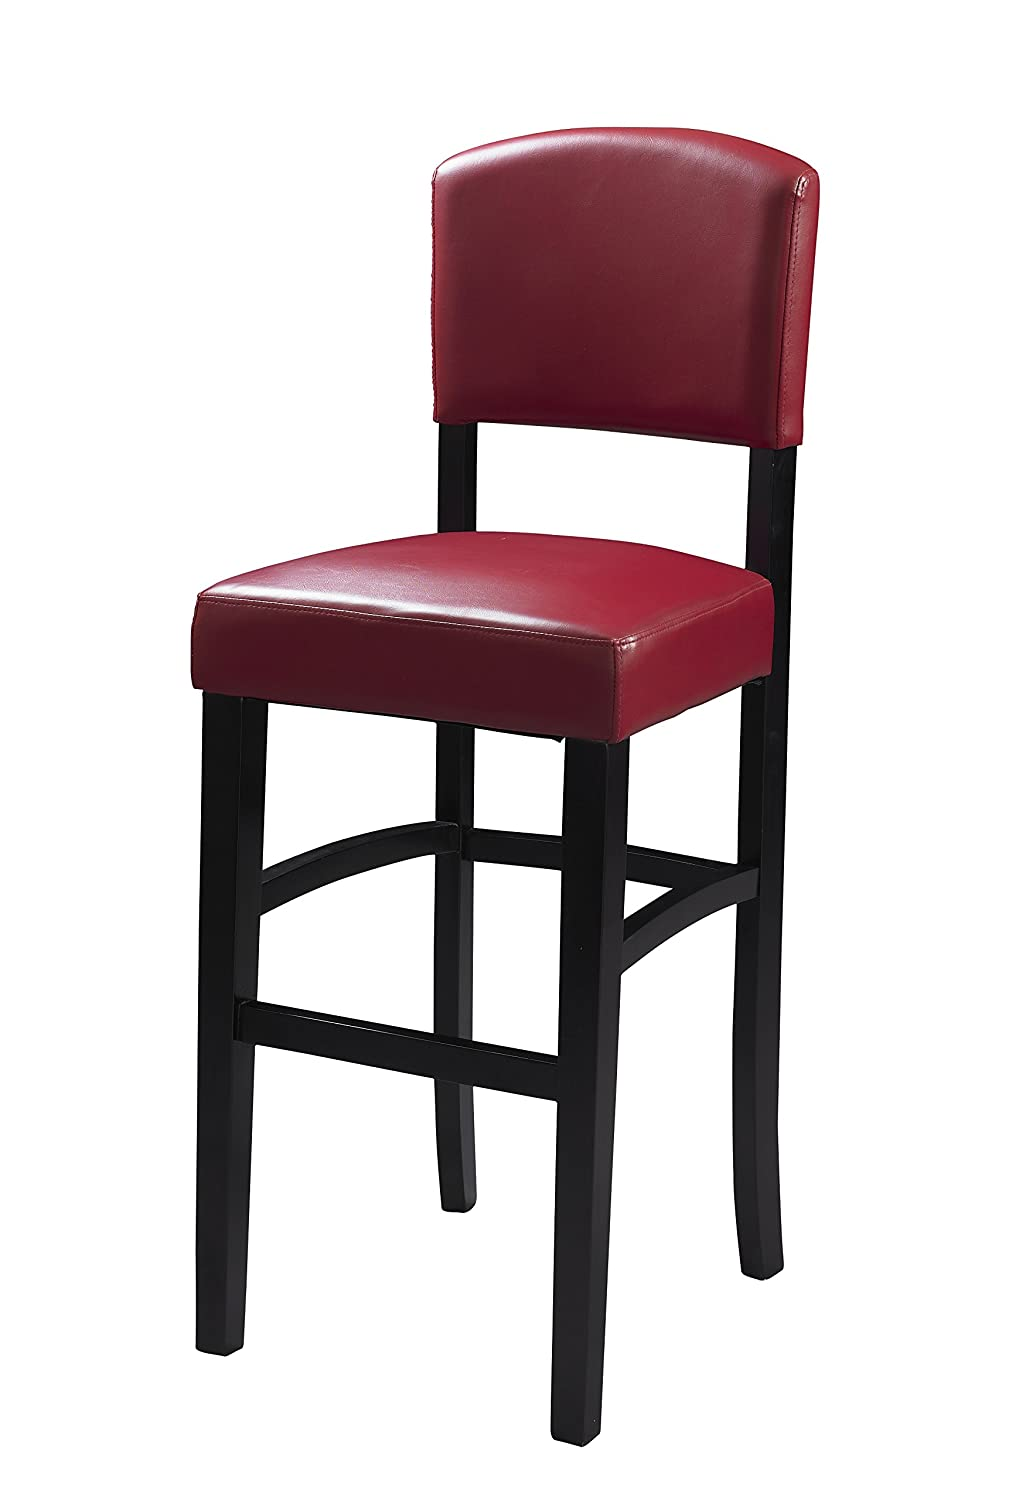 Linon Monaco Stool, 30-Inch, Dark Red